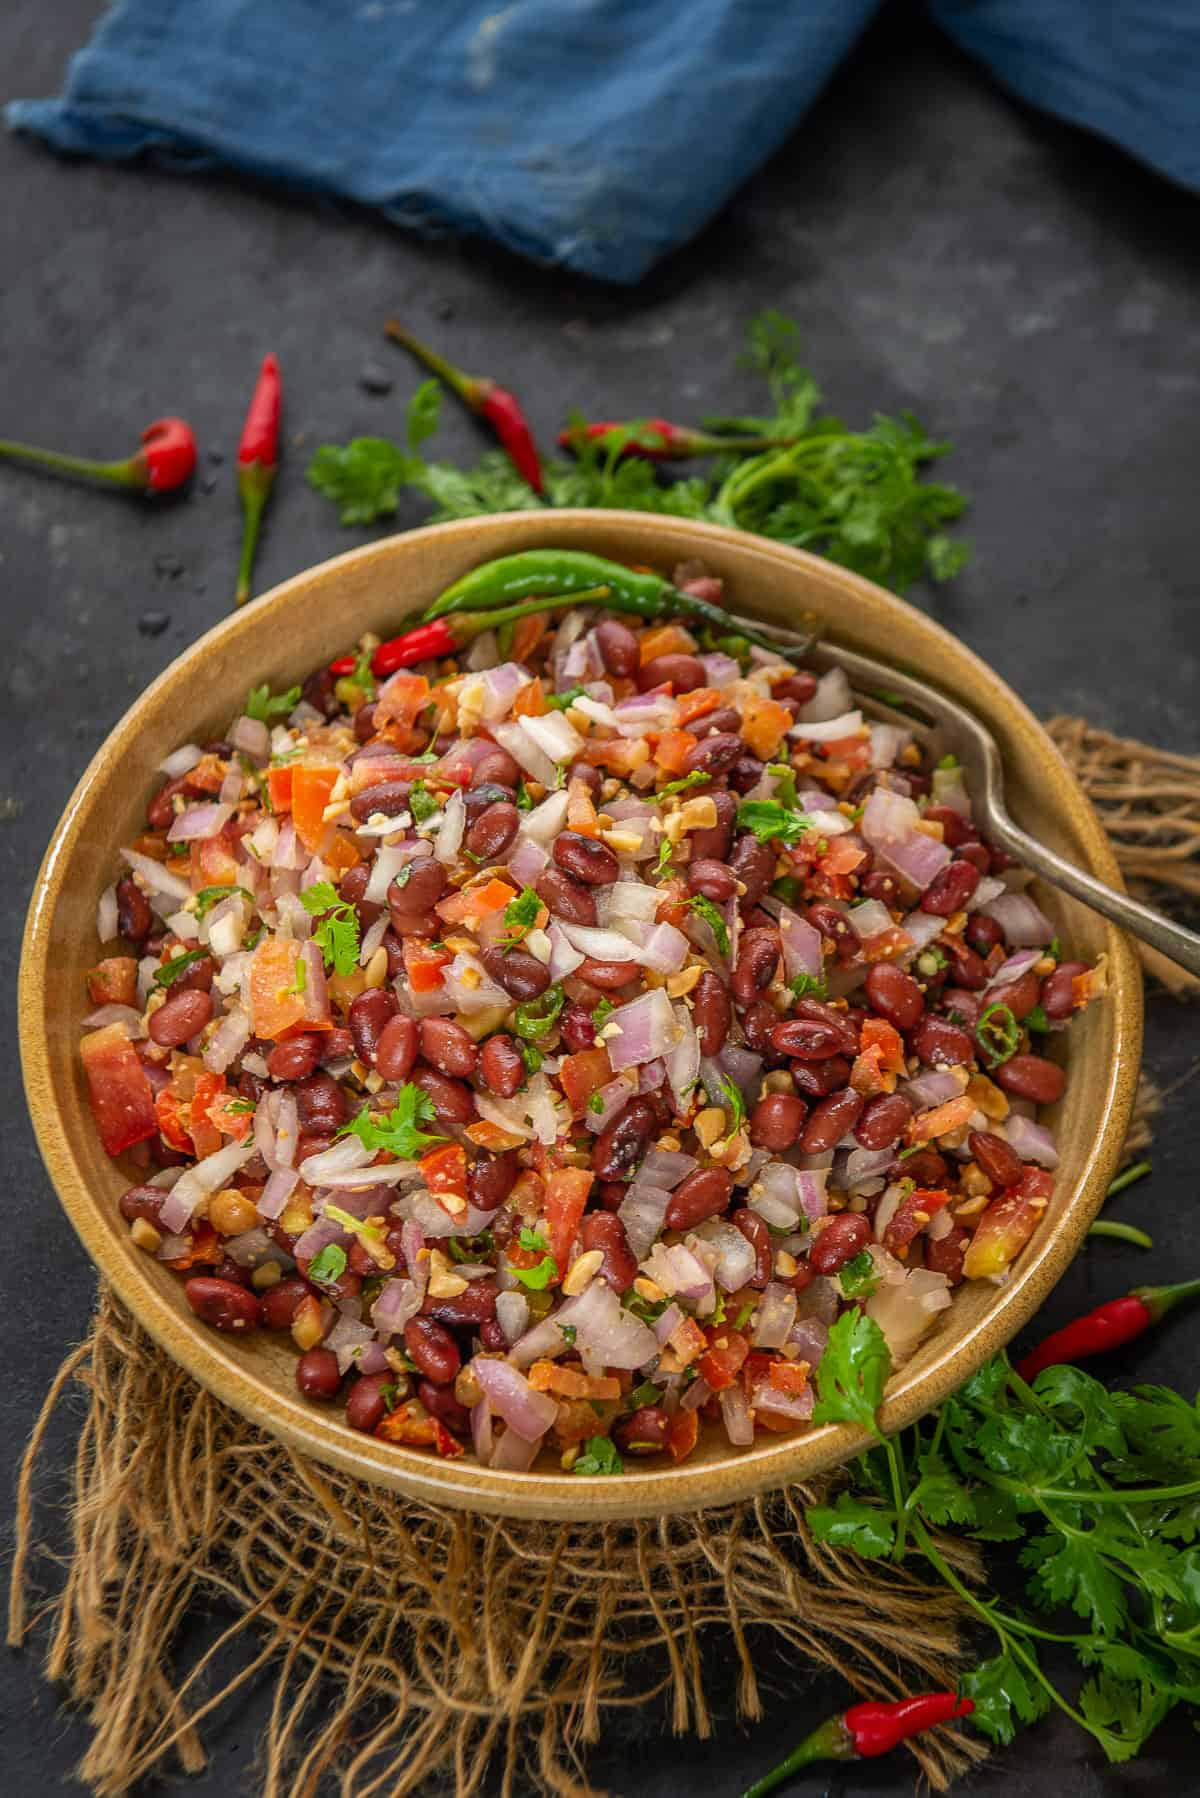 Kidney beans salad served in a bowl.